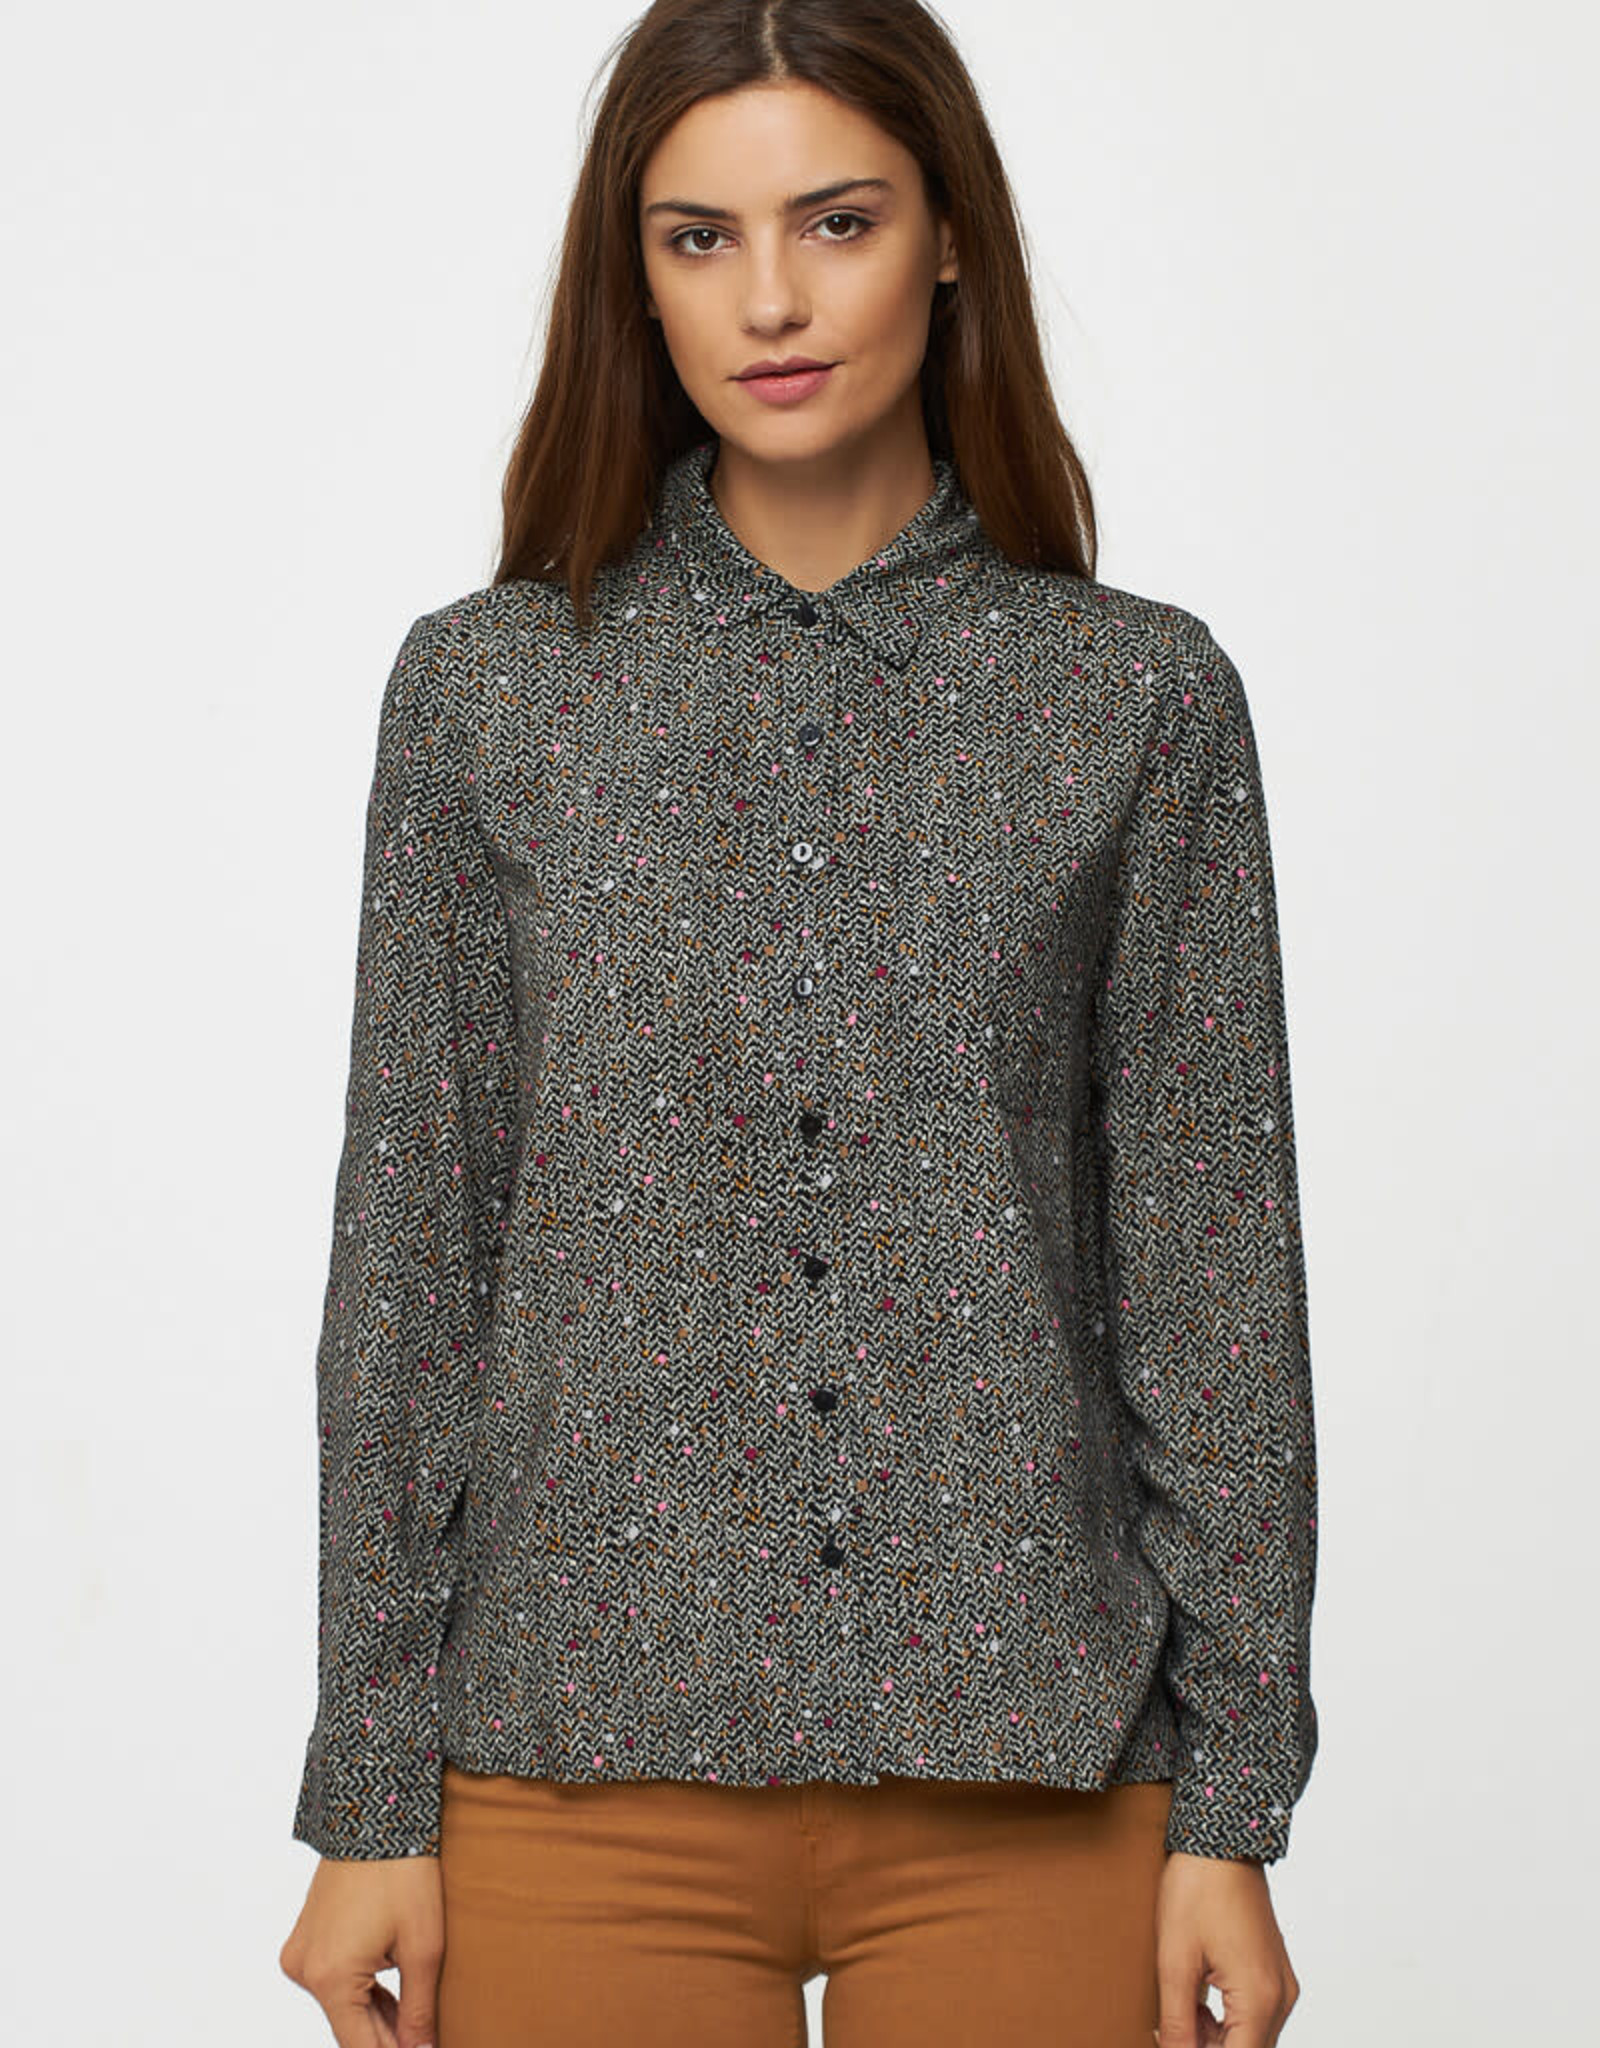 Print Blouse with Buttons